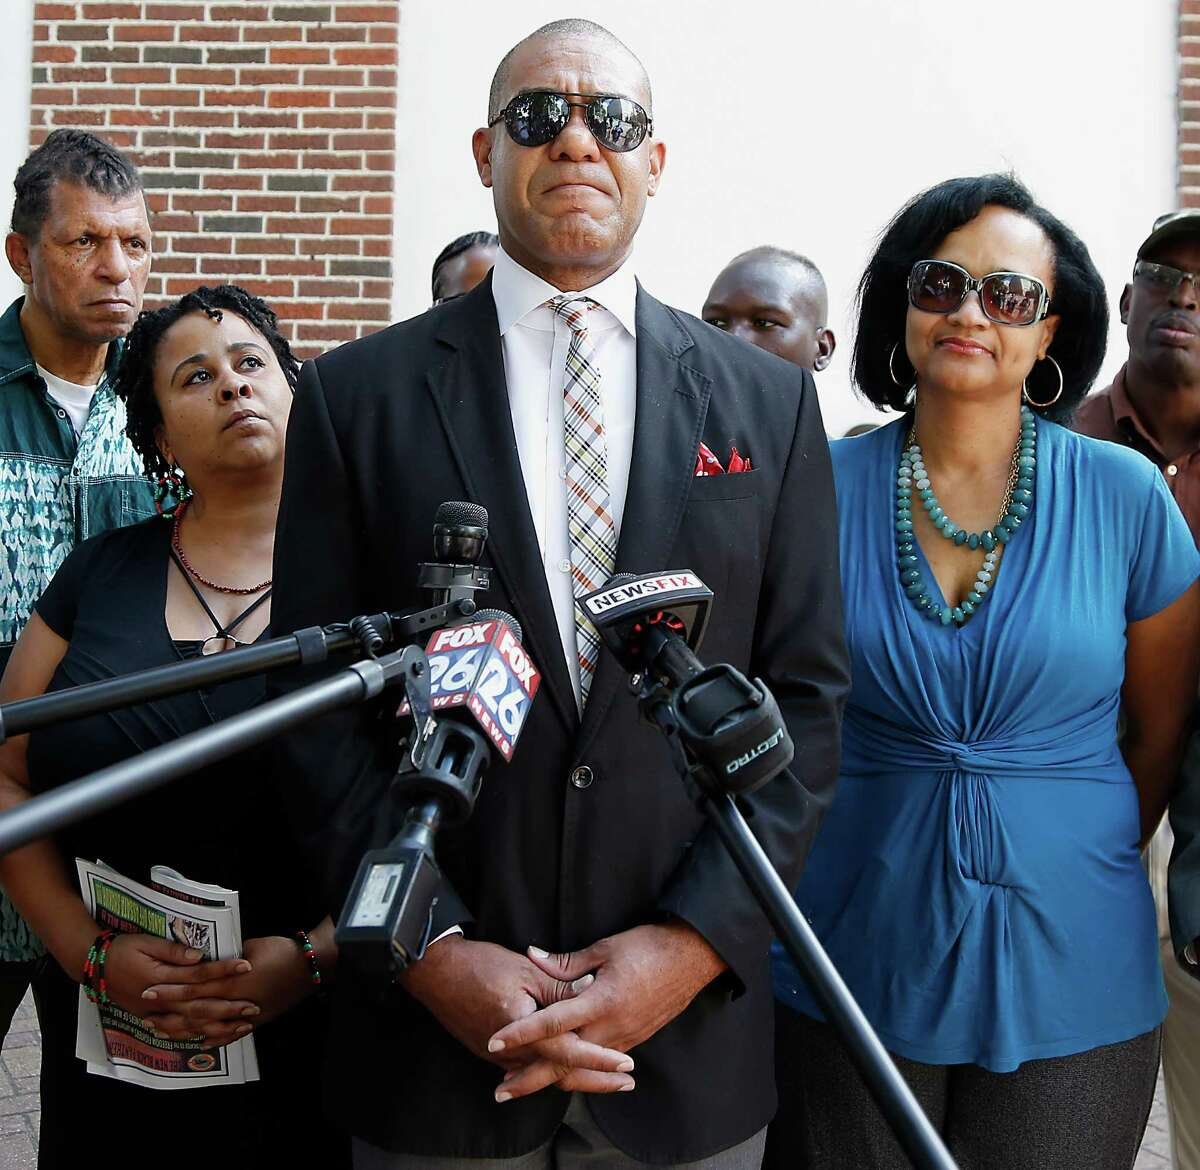 Former Houston City Councilman Jarvis Johnson center, speaks during a press conference as Johnson wife Charlene Johnson right, and Krystal Muhammad left, look on, Johnson was pulled over on September the 13th Johnson by a Precinct 1 Deputy Constable for a traffic violation Thursday, Oct. 9, 2014, in Houston. Johnson says he was held a gunpoint, slapped and robbed of $2,500 cash a Precinct 1 Deputy Constable pulled who Johnson over for allegedly speeding. ( James Nielsen / Houston Chronicle )